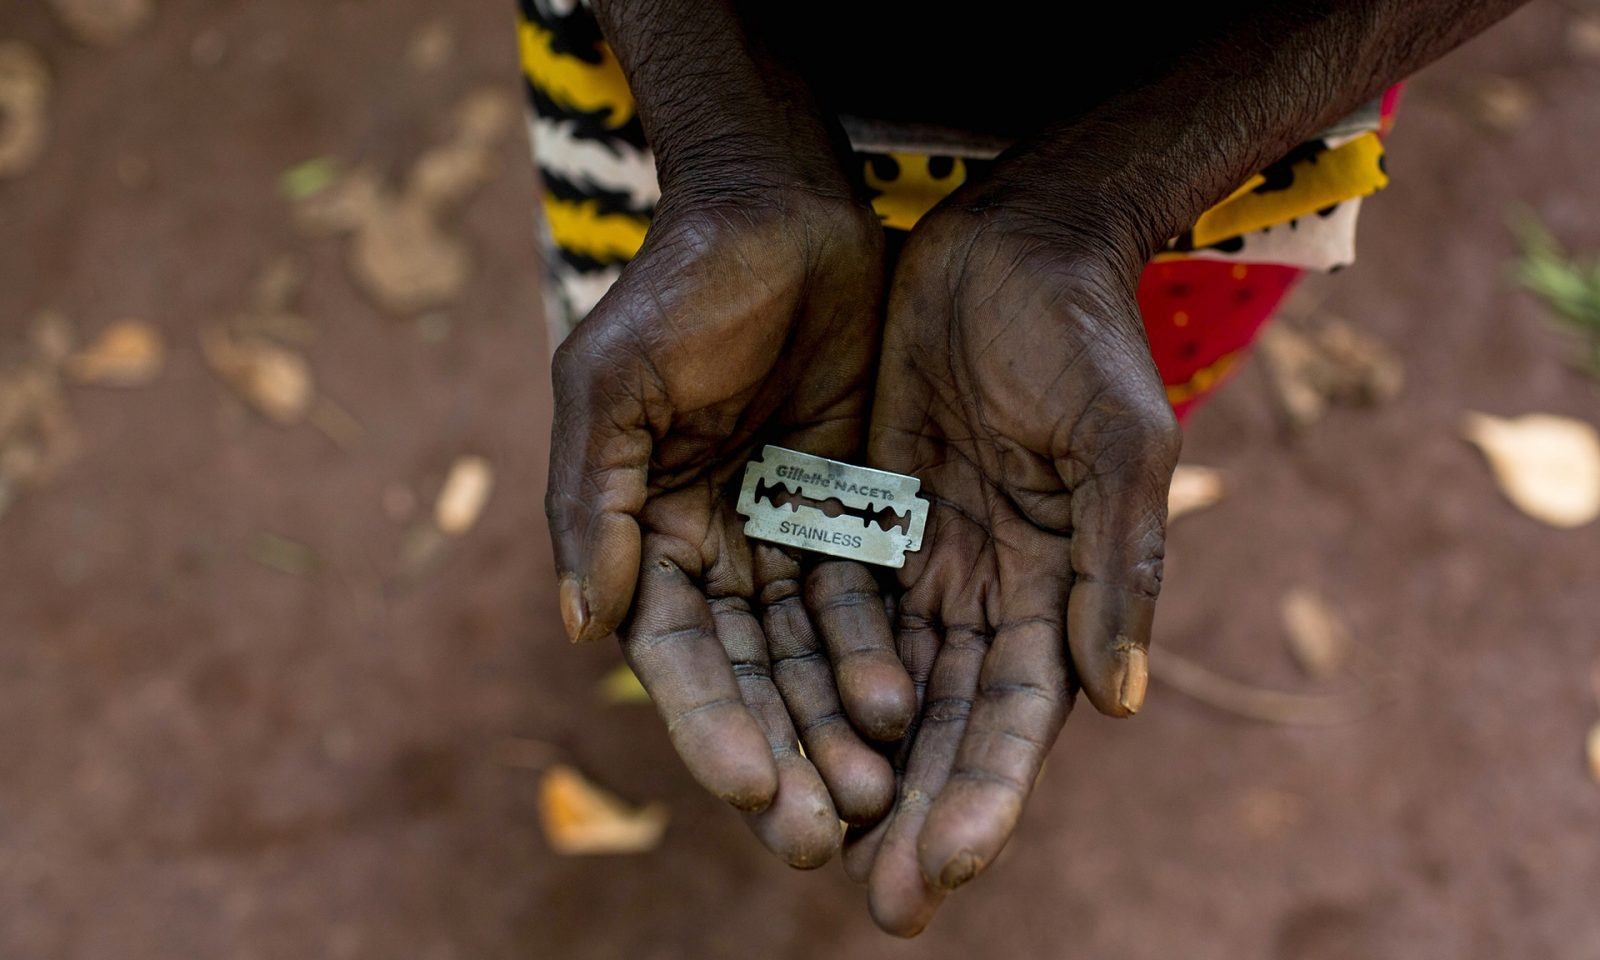 Group calls on African religious leaders to help tackle female genital mutilation